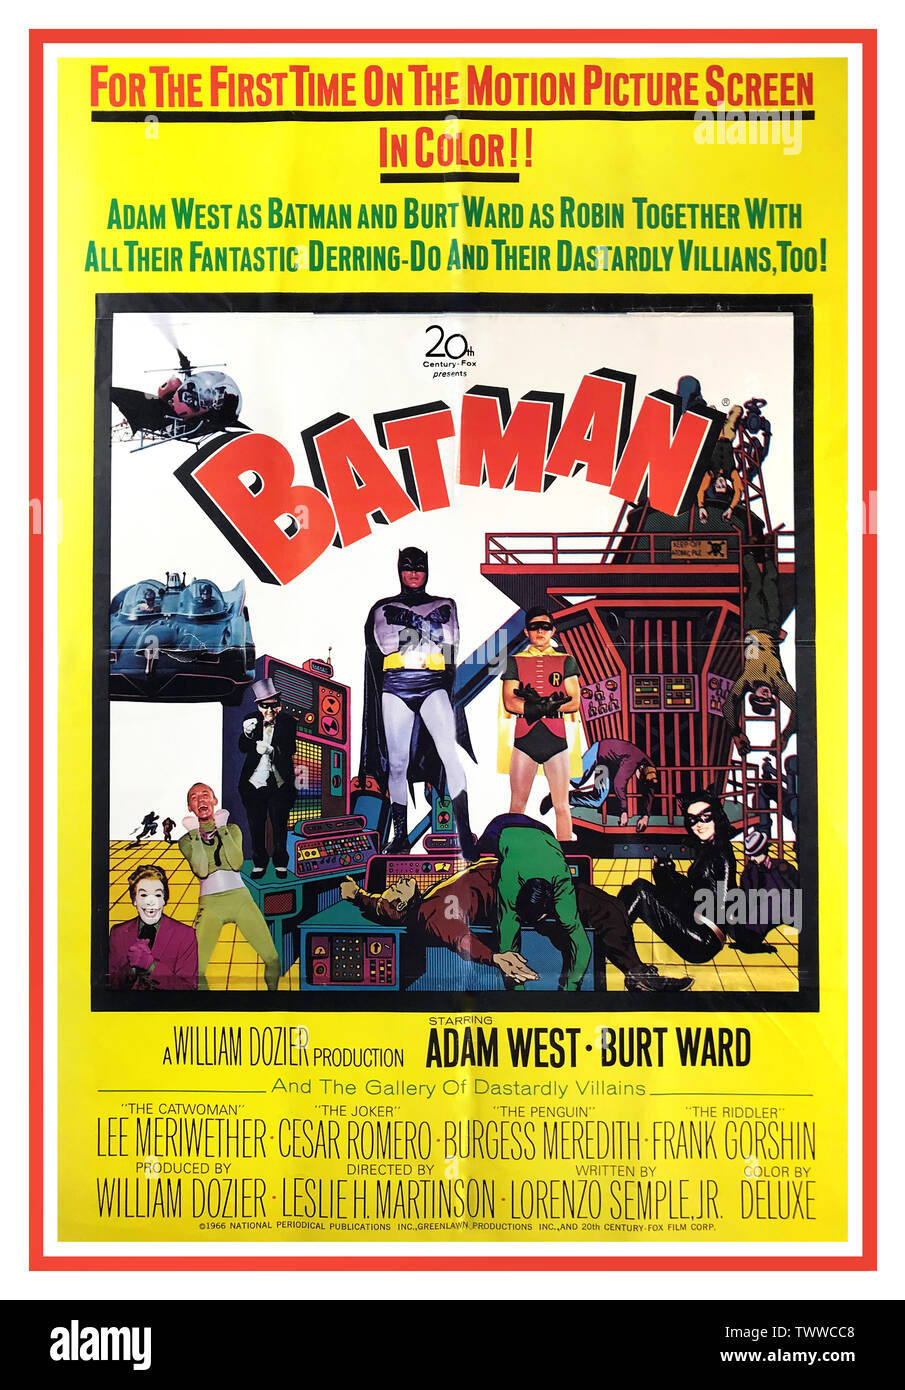 batman 1966 original vintage adam west movie theater poster starring adam west as batman burt ward as robin lee meriwether director leslie martinson writers lorenzo semple jr and bob kane bob kane and bill fingers dc ics ic book superhero batman for the first time on the motion picture screen in color adam west as batman and burt ward as robin to her with all their fantastic derring do and their dastardly villains too TWWCC8